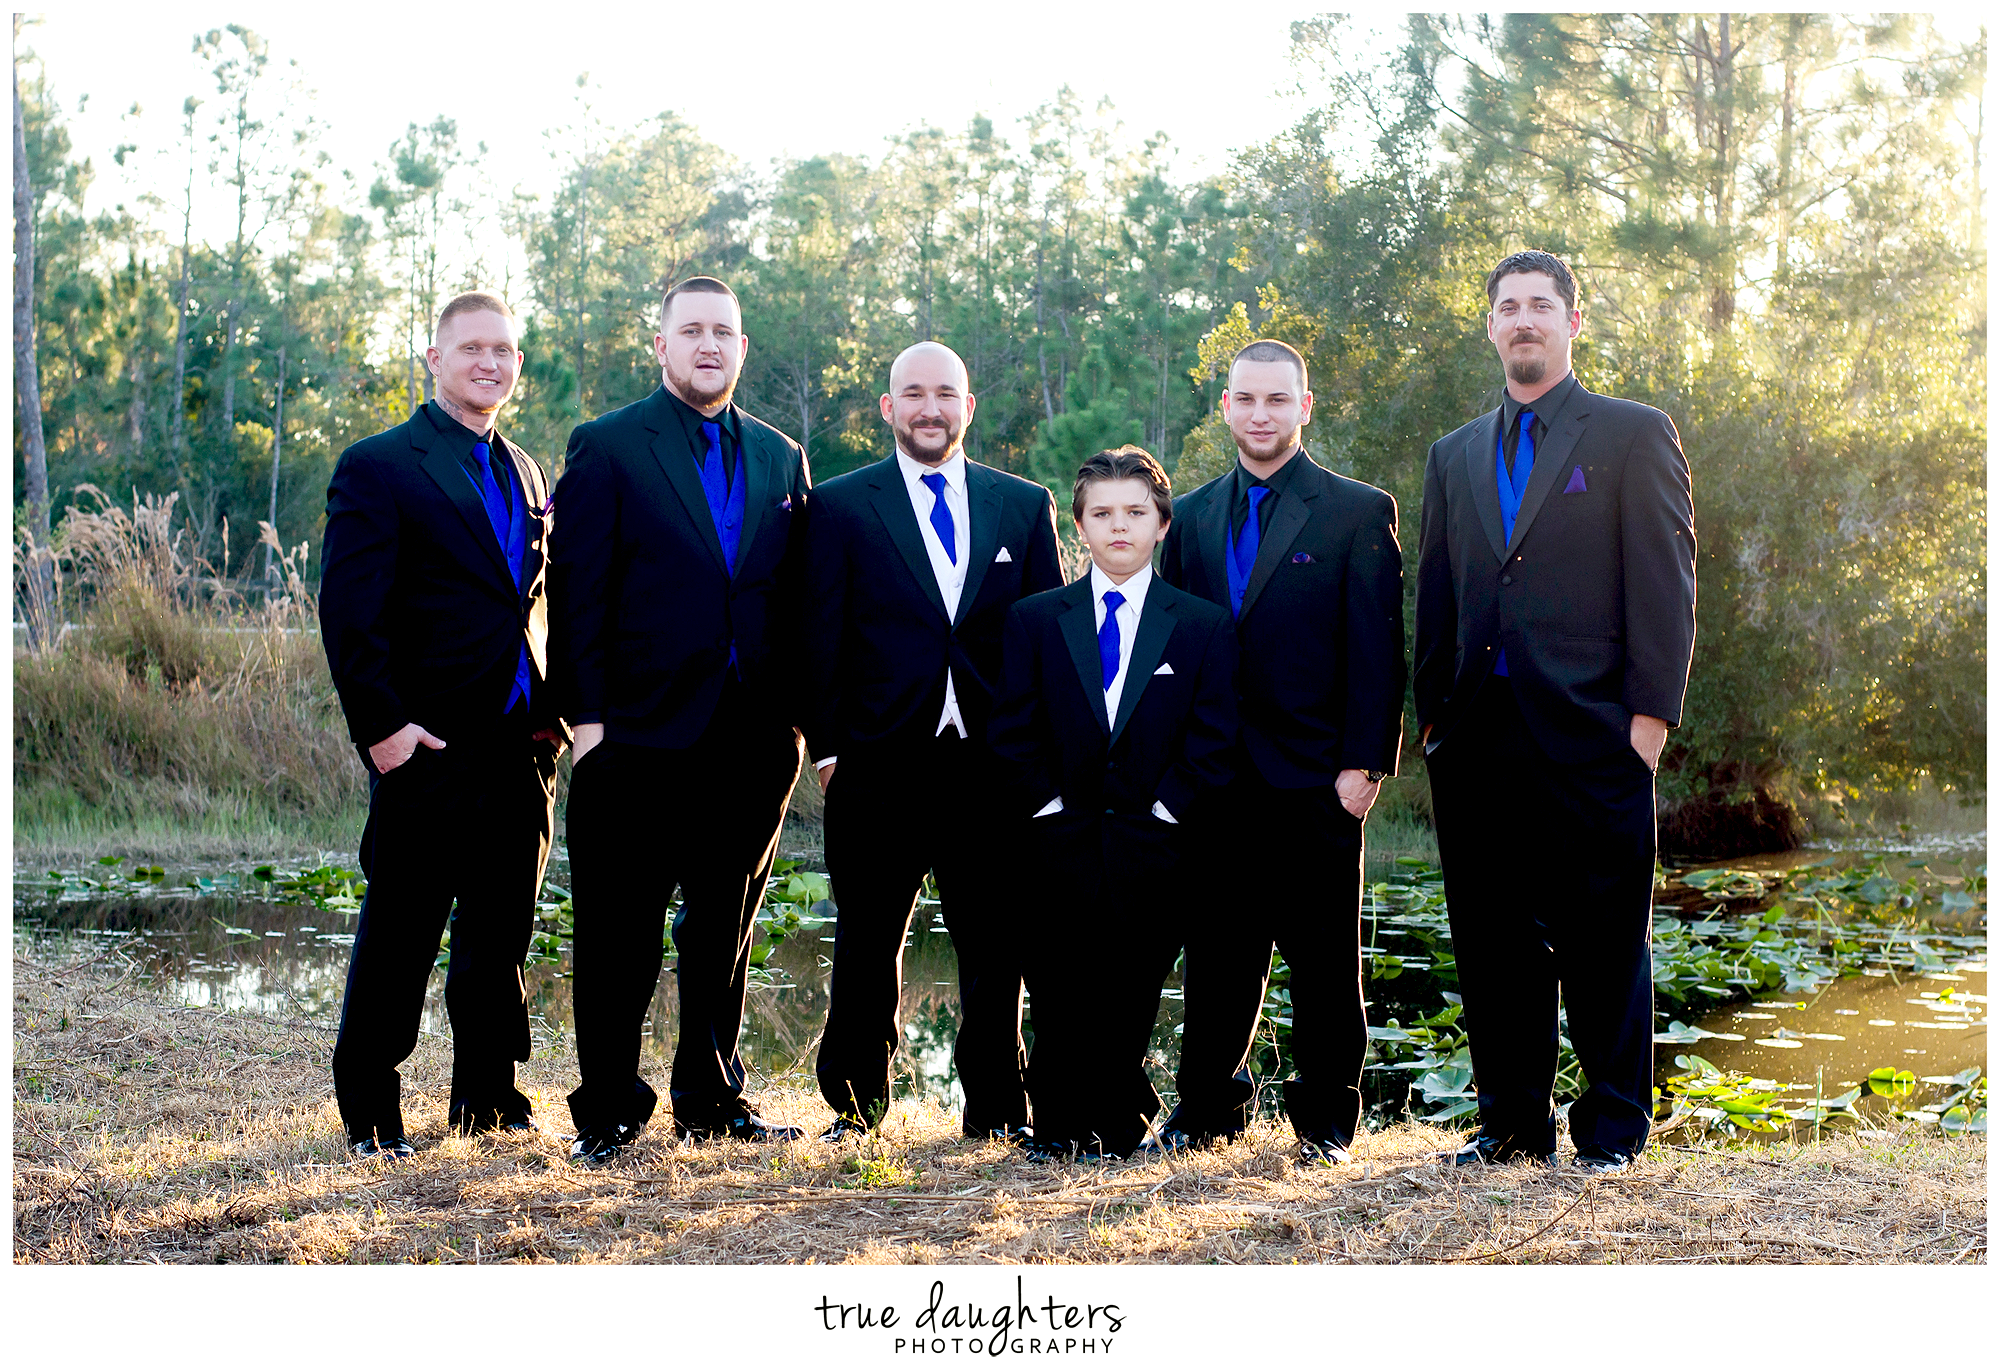 True_Daughters_Photography_Campitelli_Wedding-25.png